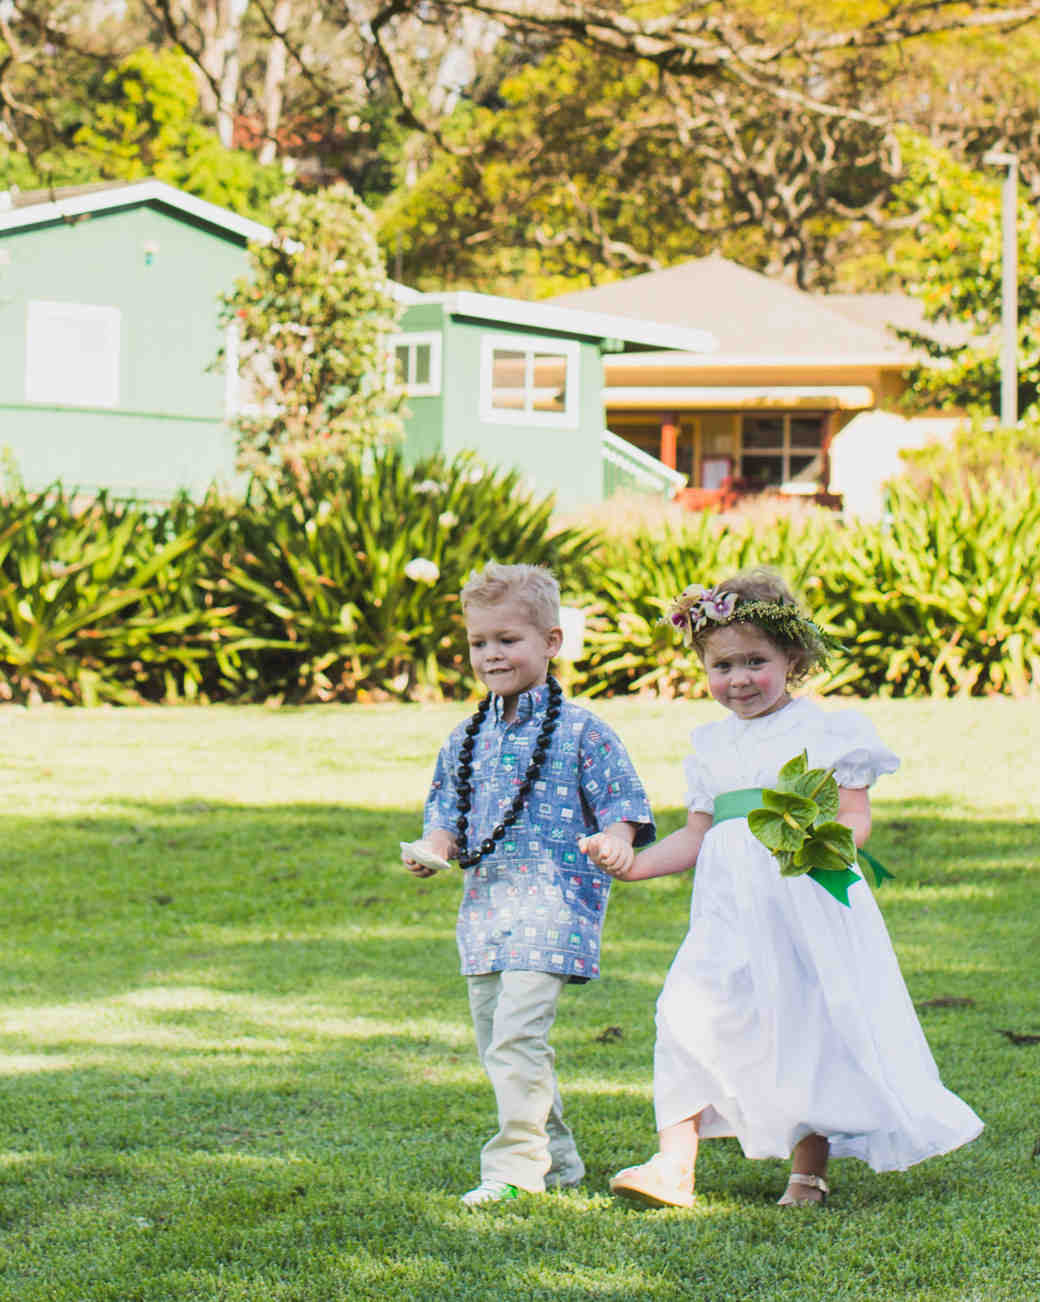 maddie-tony-wedding-kids-9382-s112424-1015.jpg